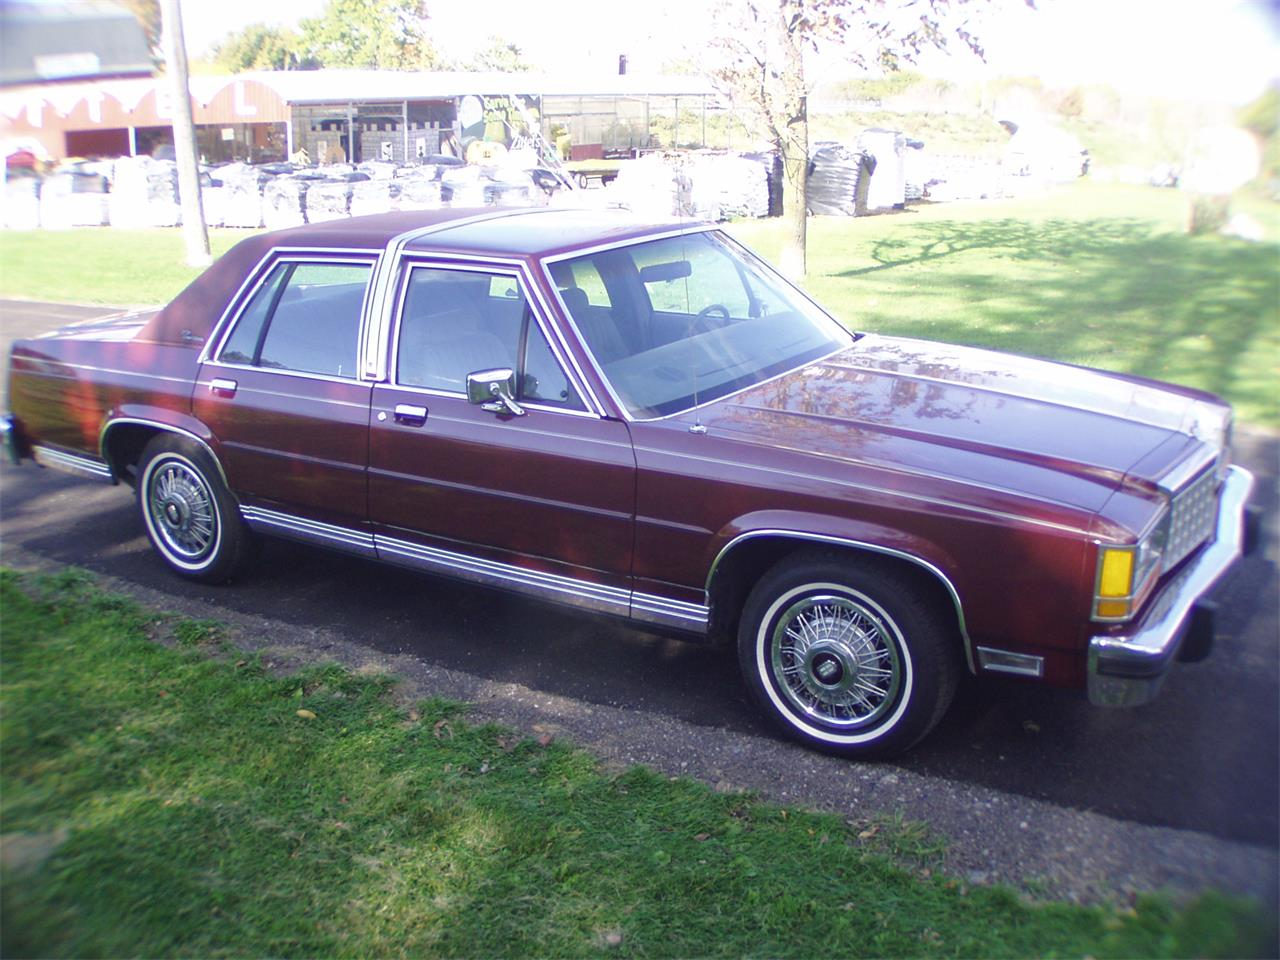 Large Picture of 1986 Ford Crown Victoria located in Hamburg New York - $4,600.00 - K12G